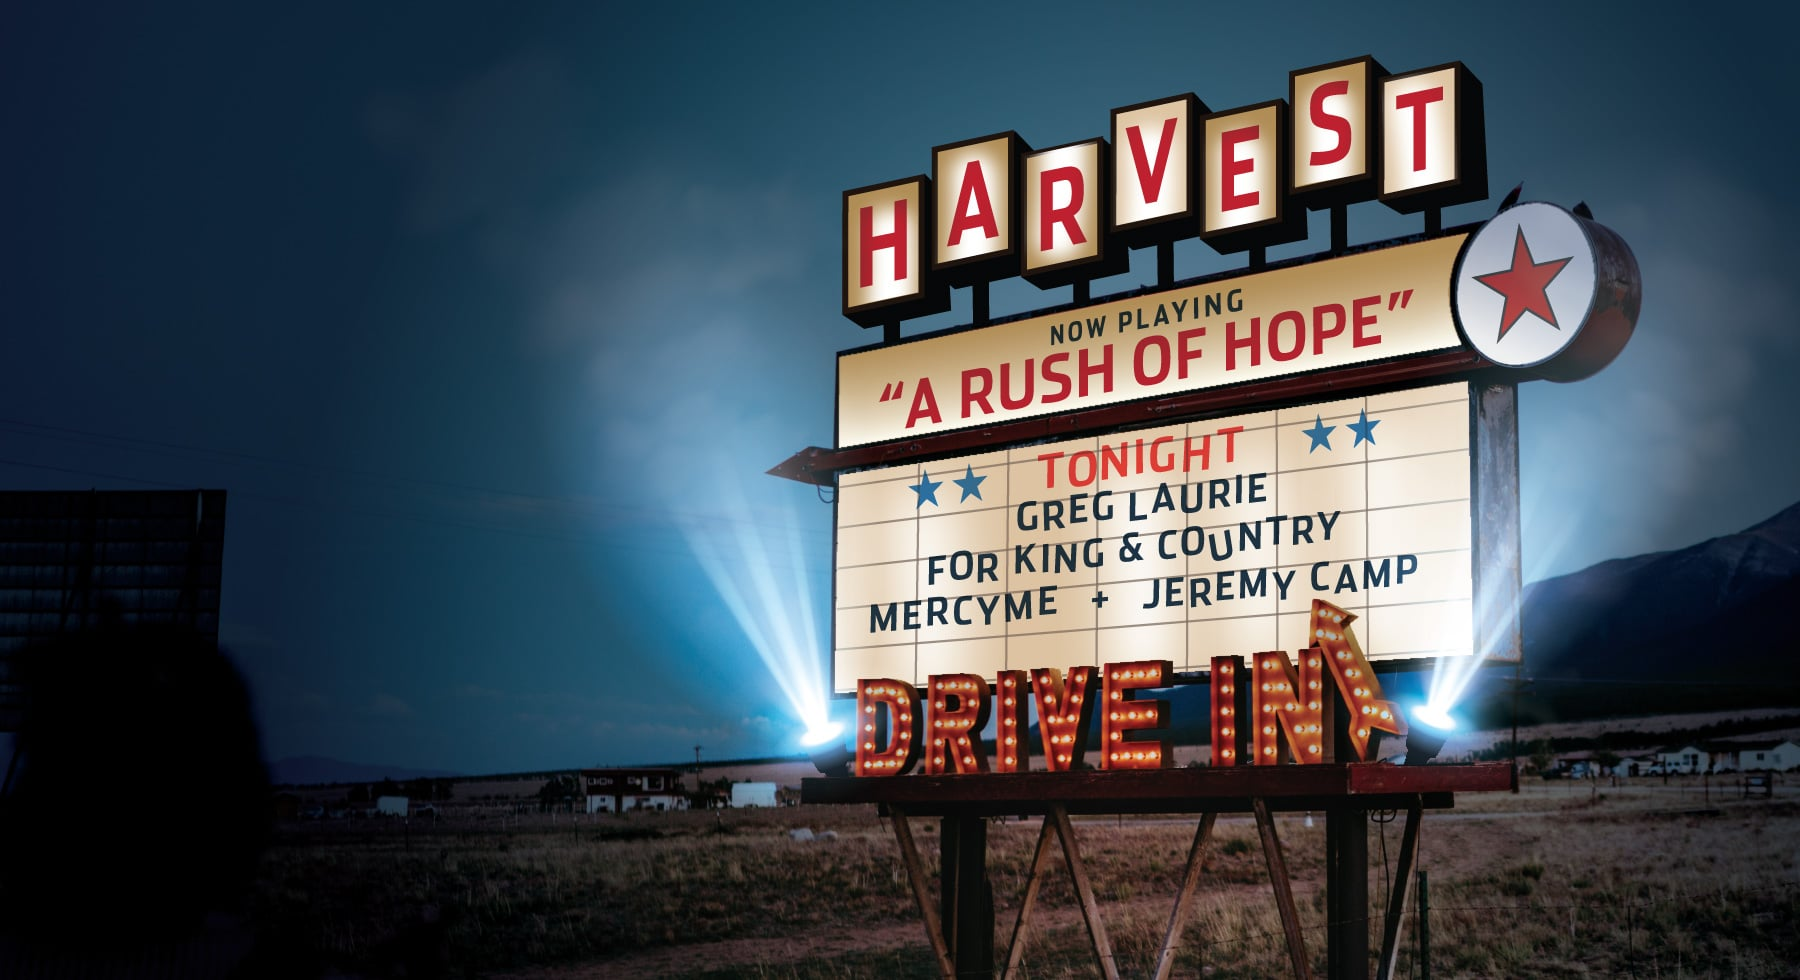 Watch A Rush of Hope - On Demand